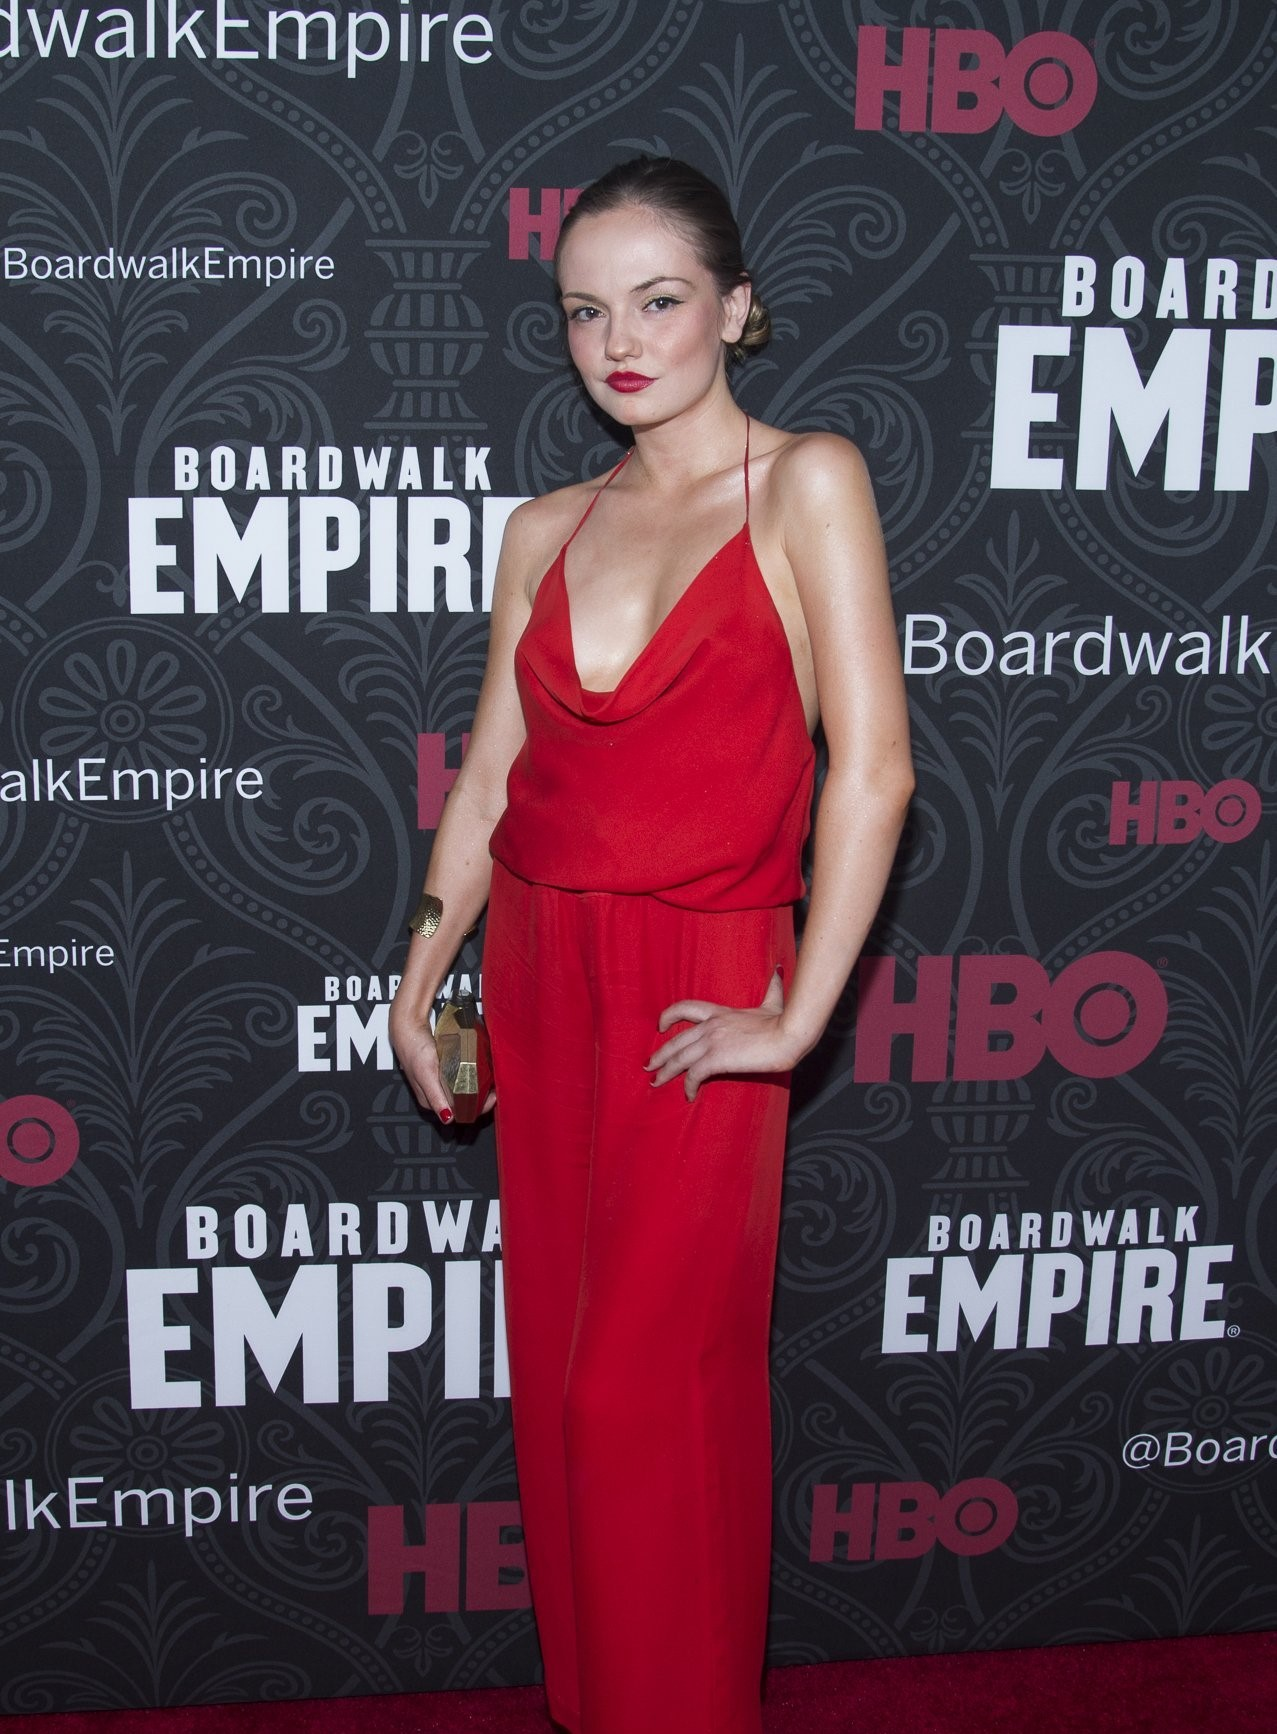 Emily Meade on HBO